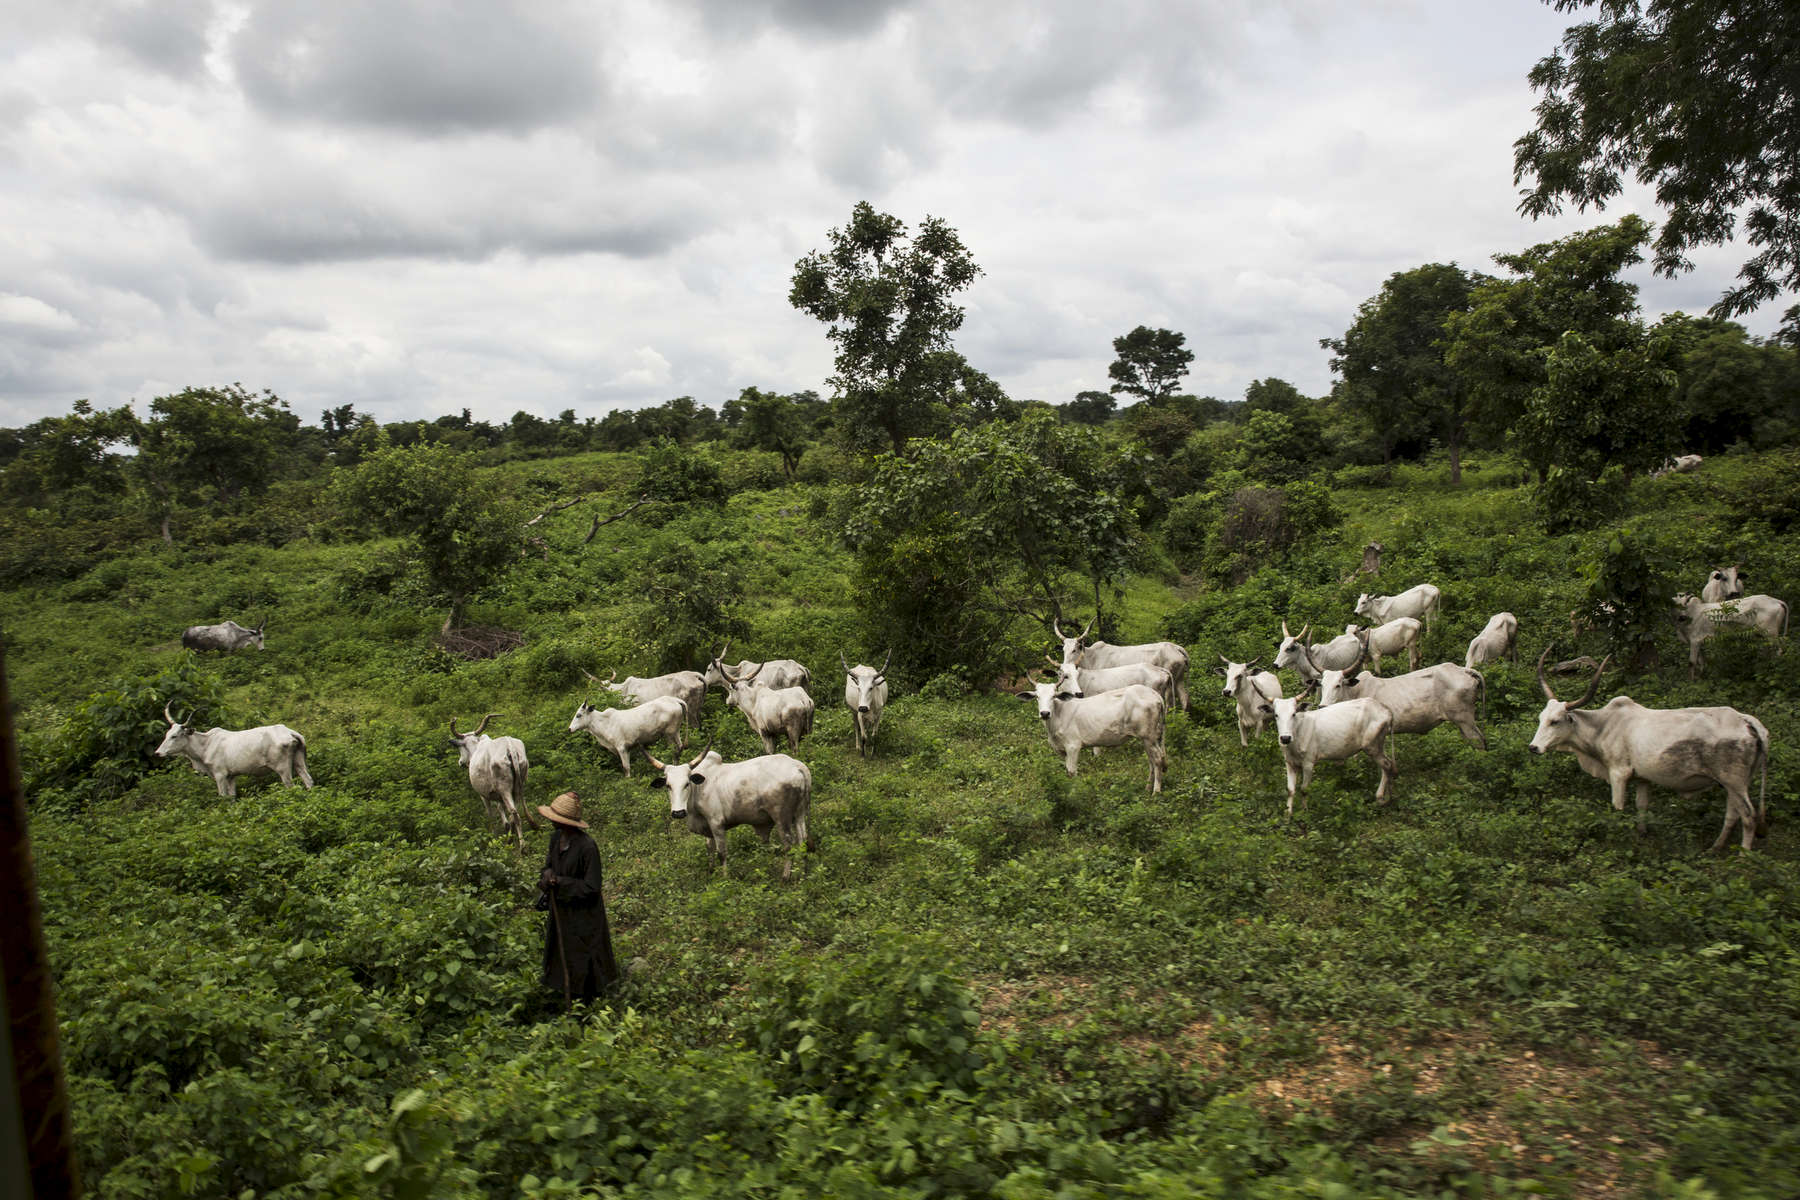 A Fulani herder waits with his cows to cross the tracks as the train passes through central Nigeria.